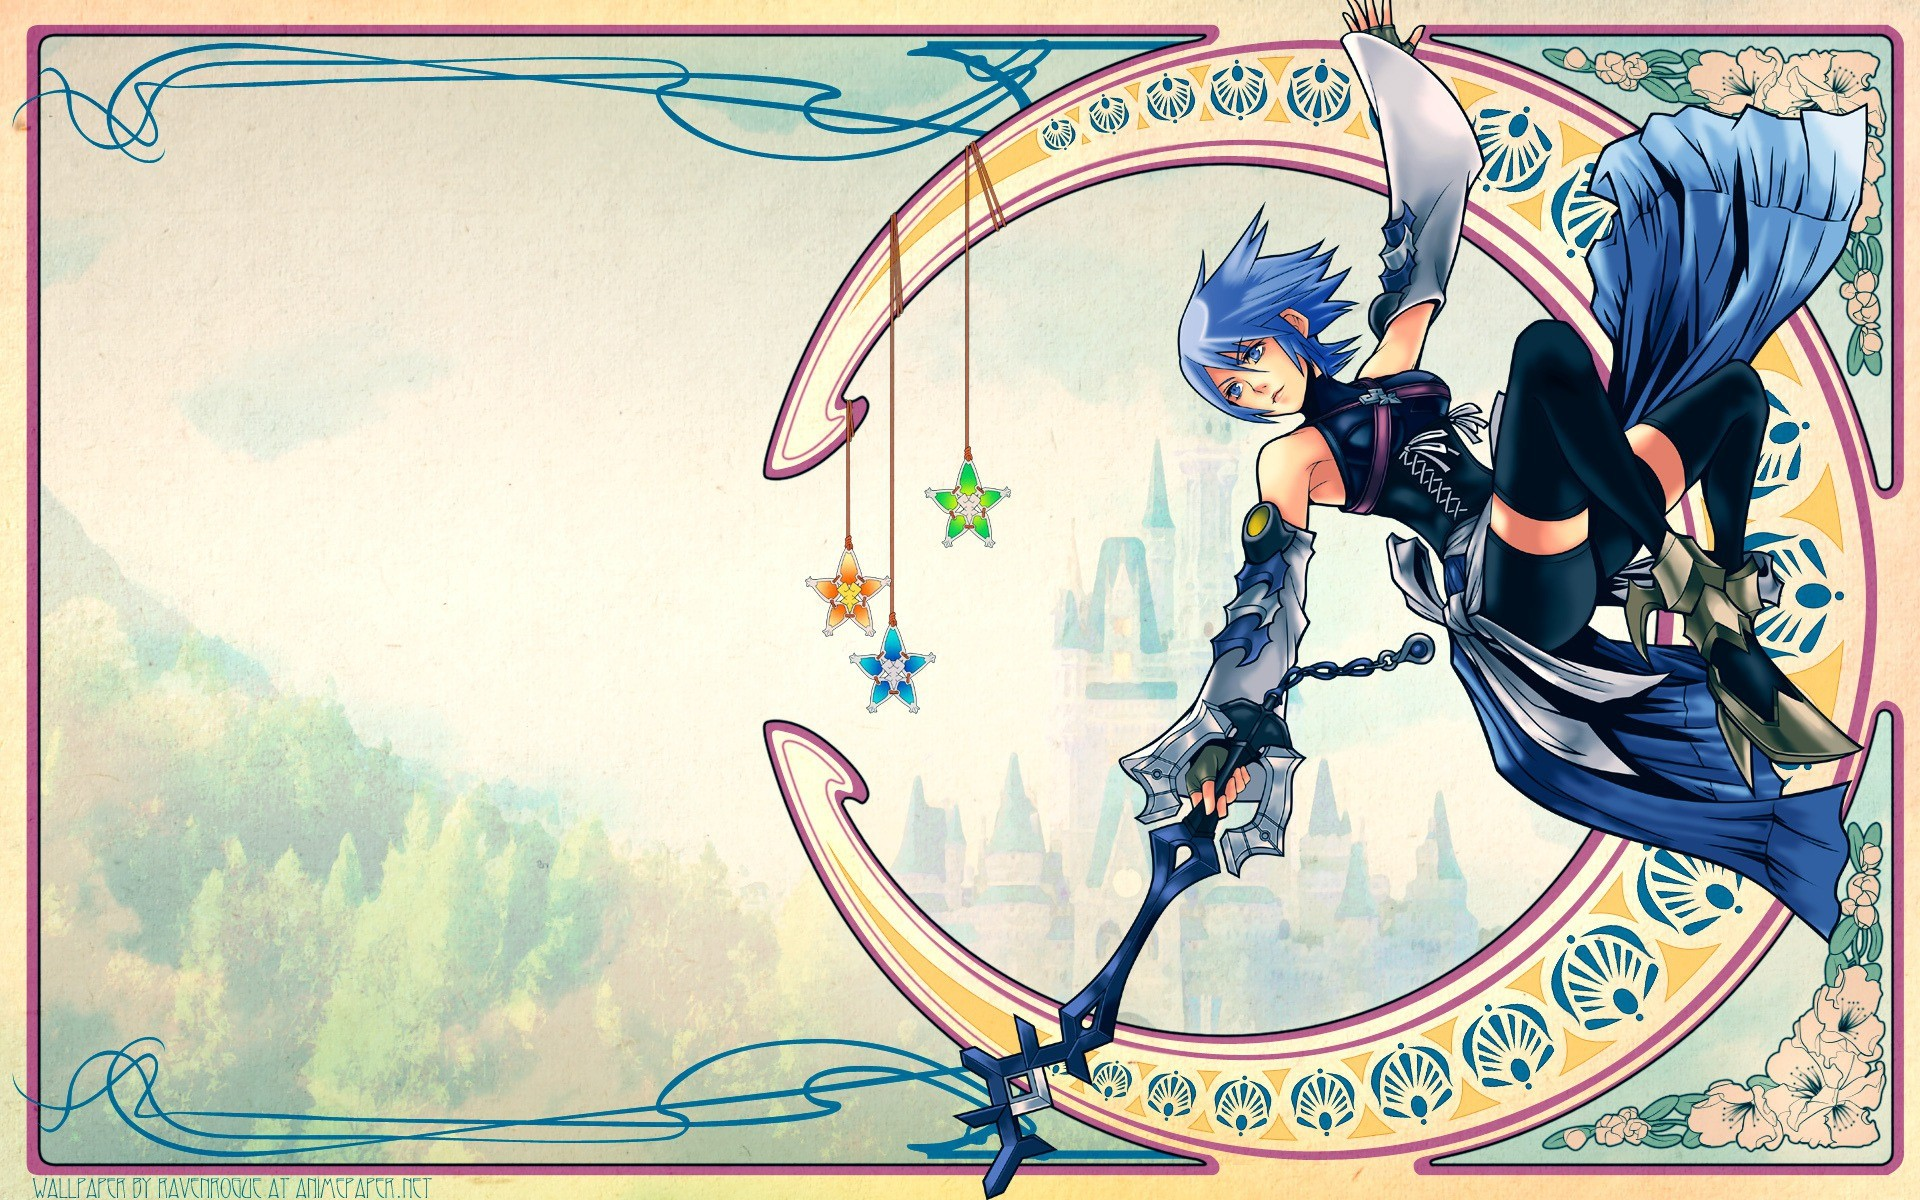 Res: 1920x1200, Aqua (Kingdom Hearts) · download Aqua (Kingdom Hearts) image